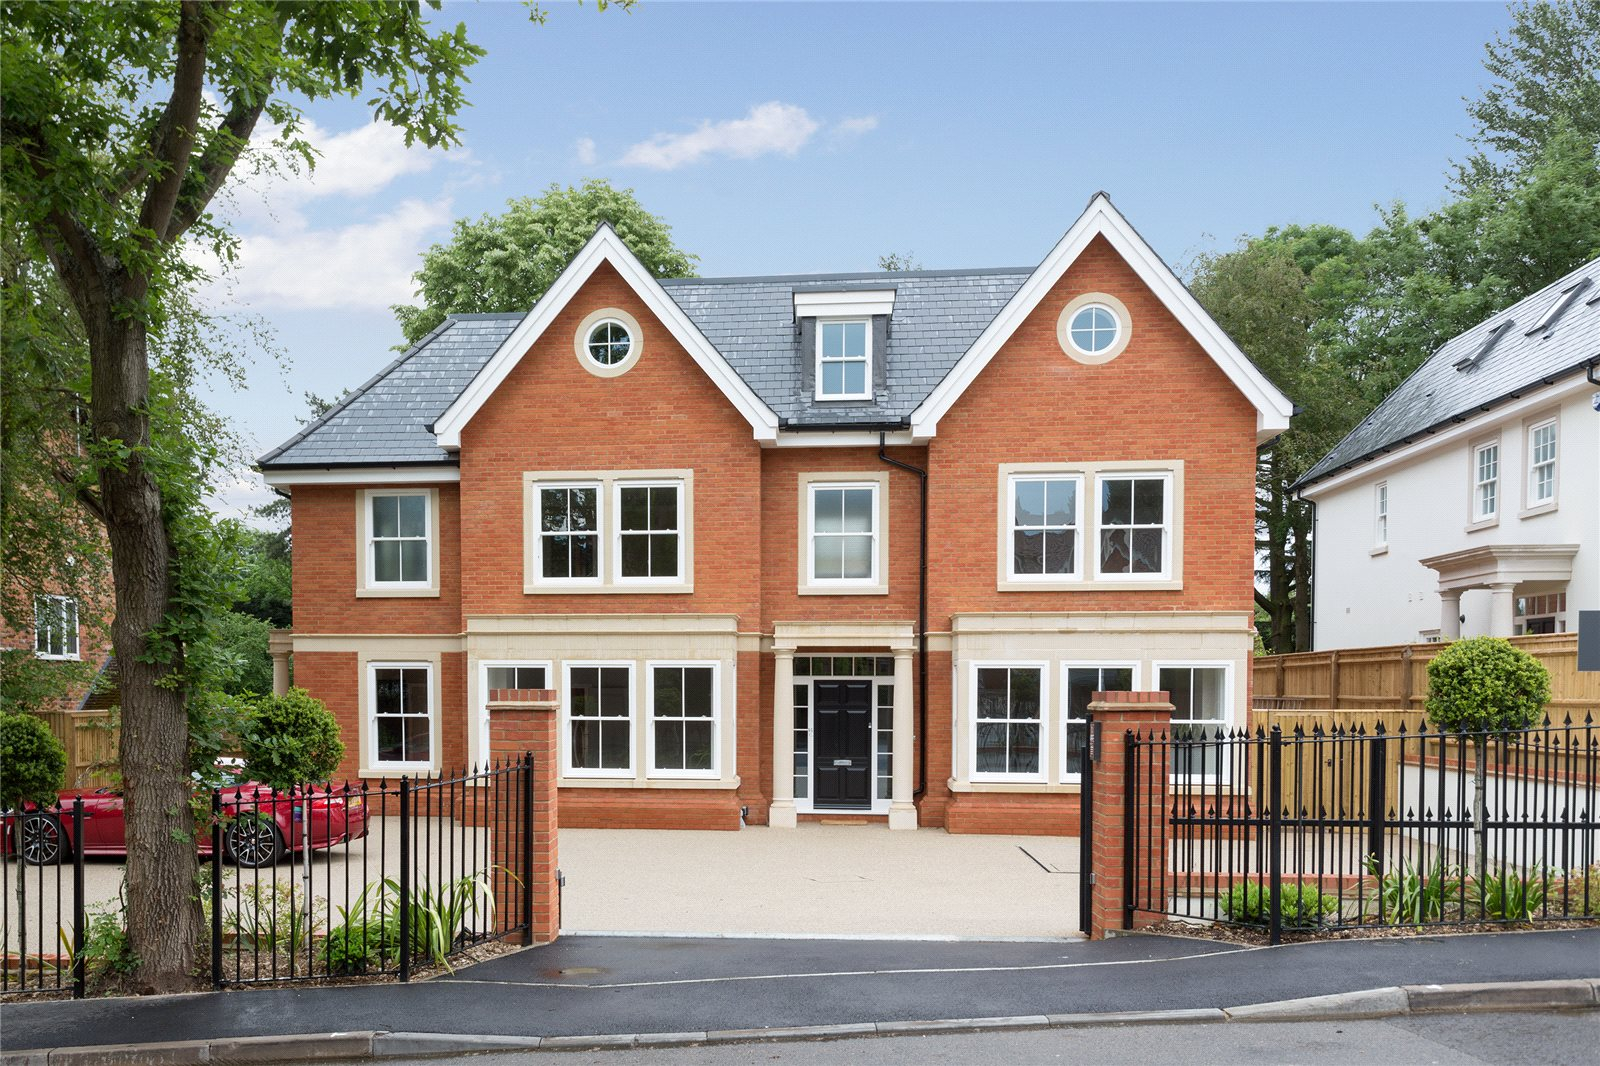 Maison unifamiliale pour l Vente à Refined II, South Park Drive, Gerrards Cross, Buckinghamshire, SL9 Gerrards Cross, Angleterre